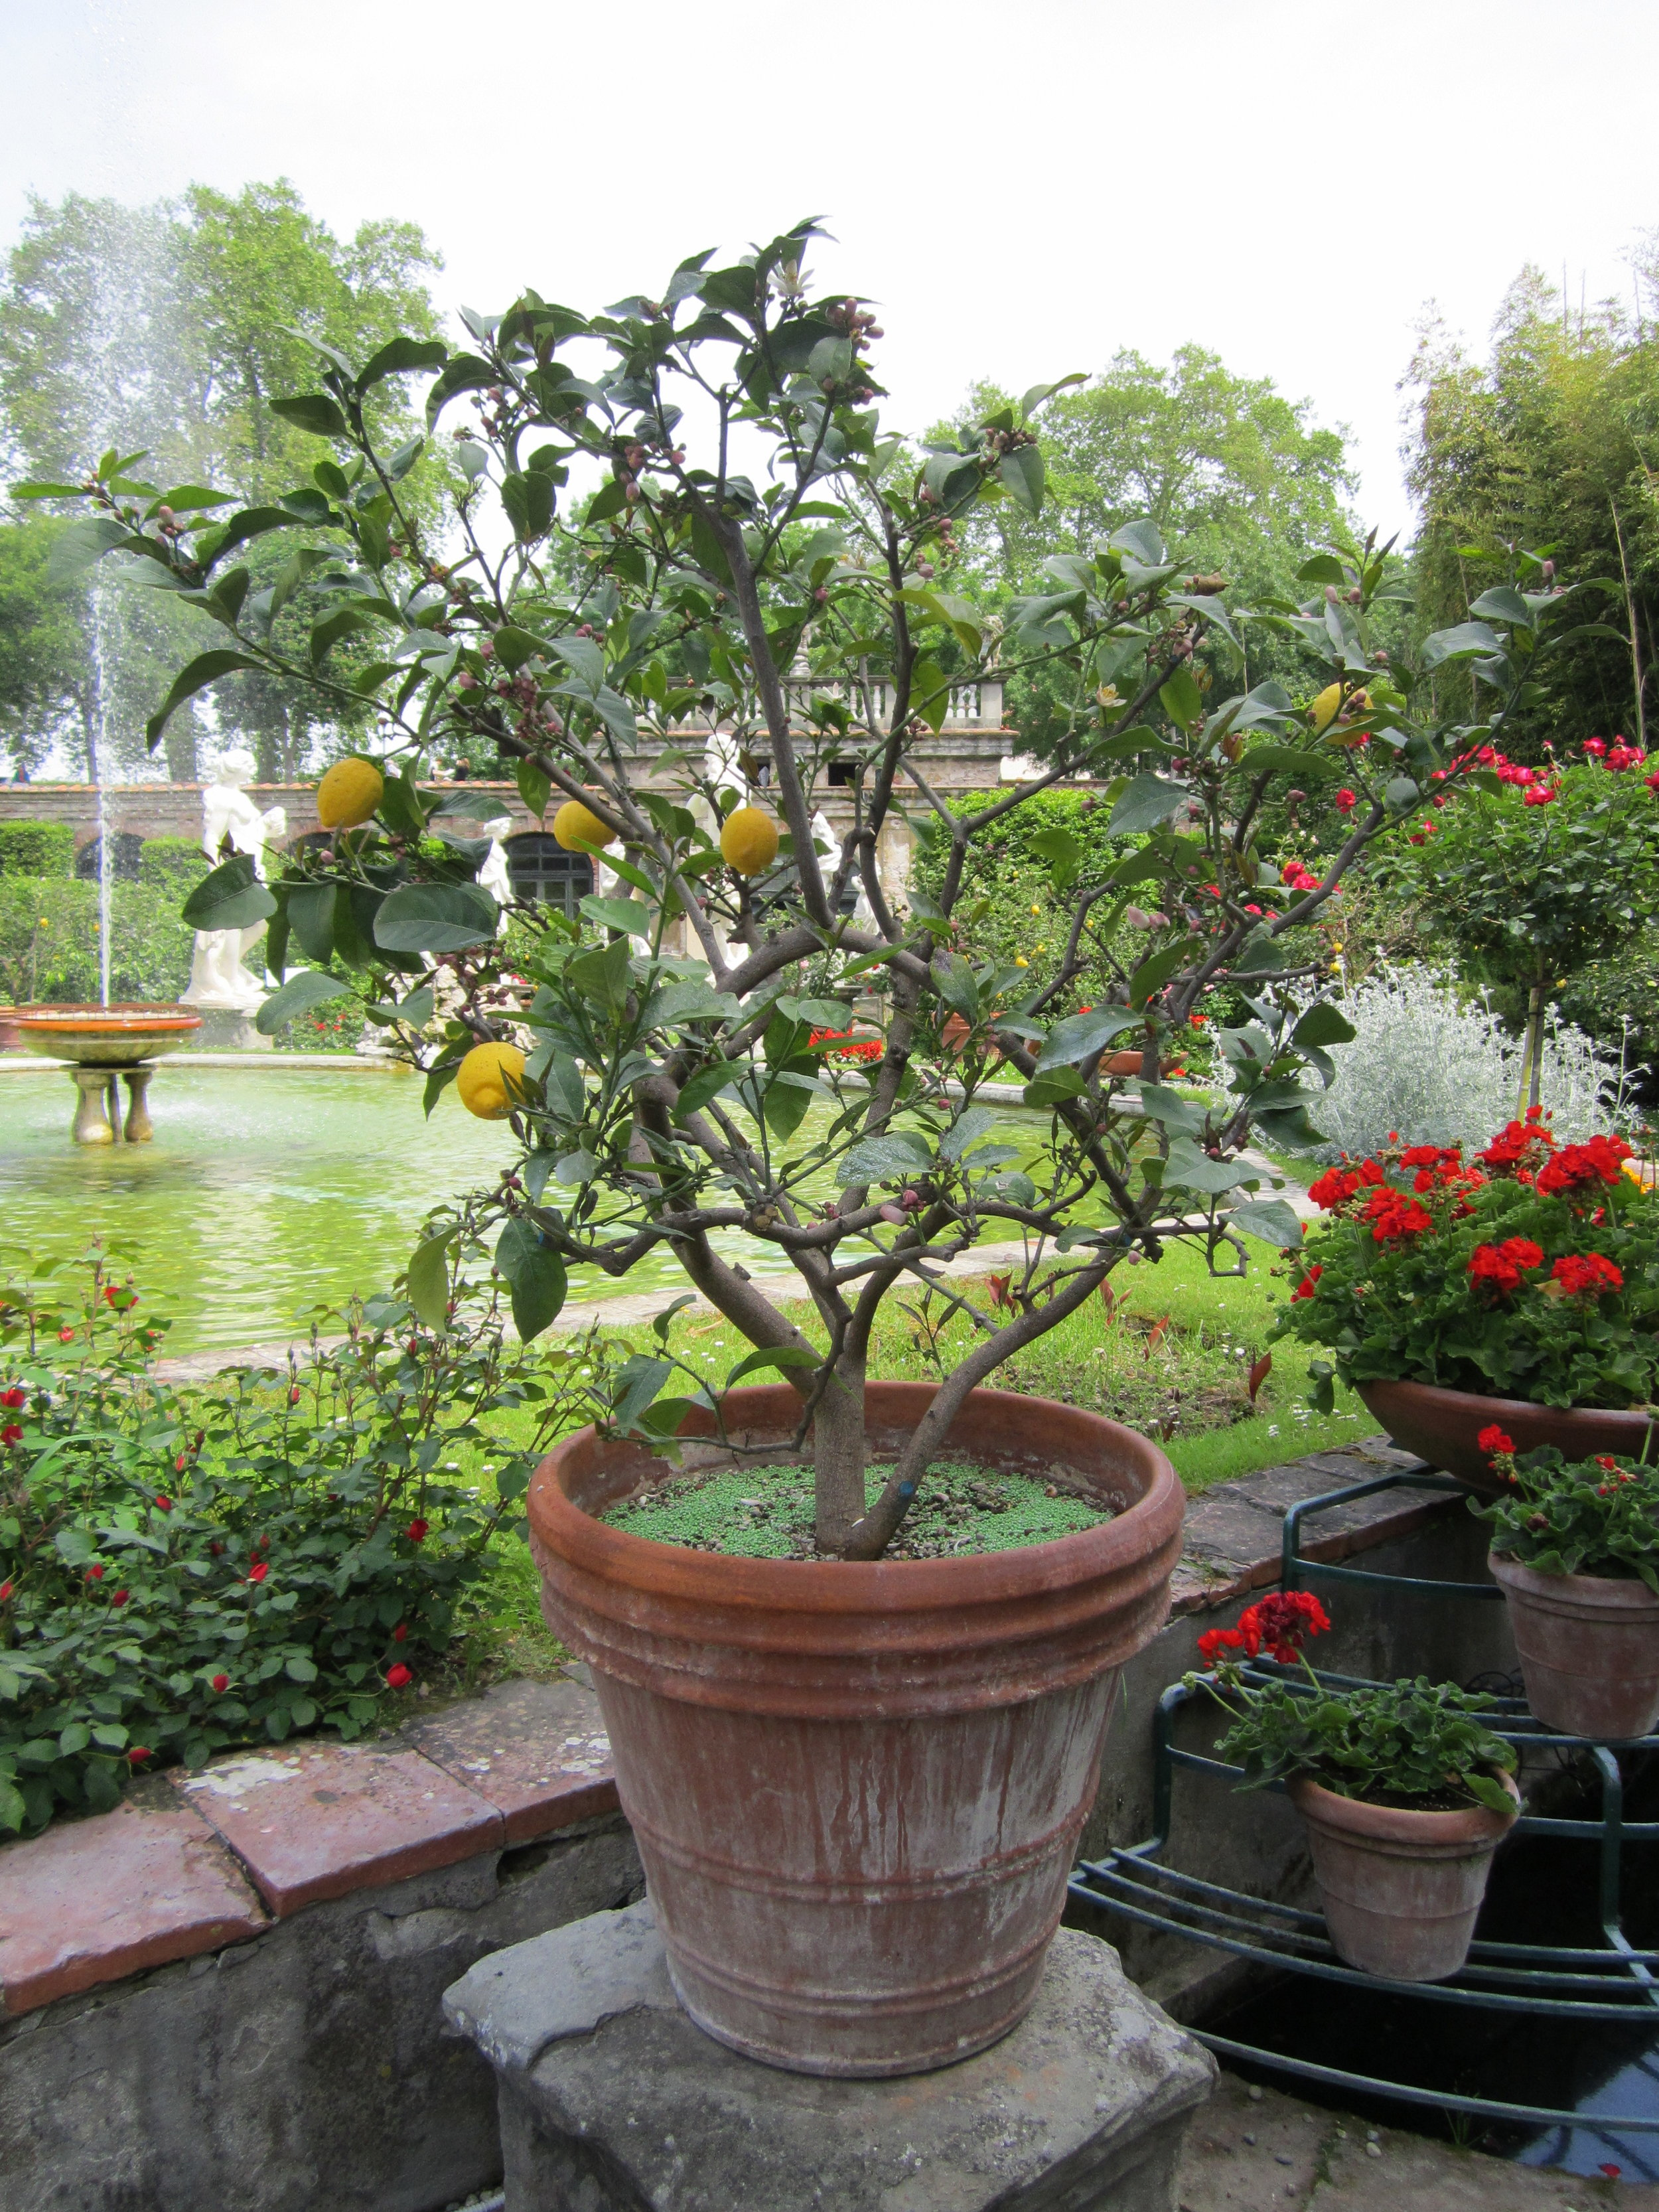 A lemon tree in late spring, Palazzo Pfanner.